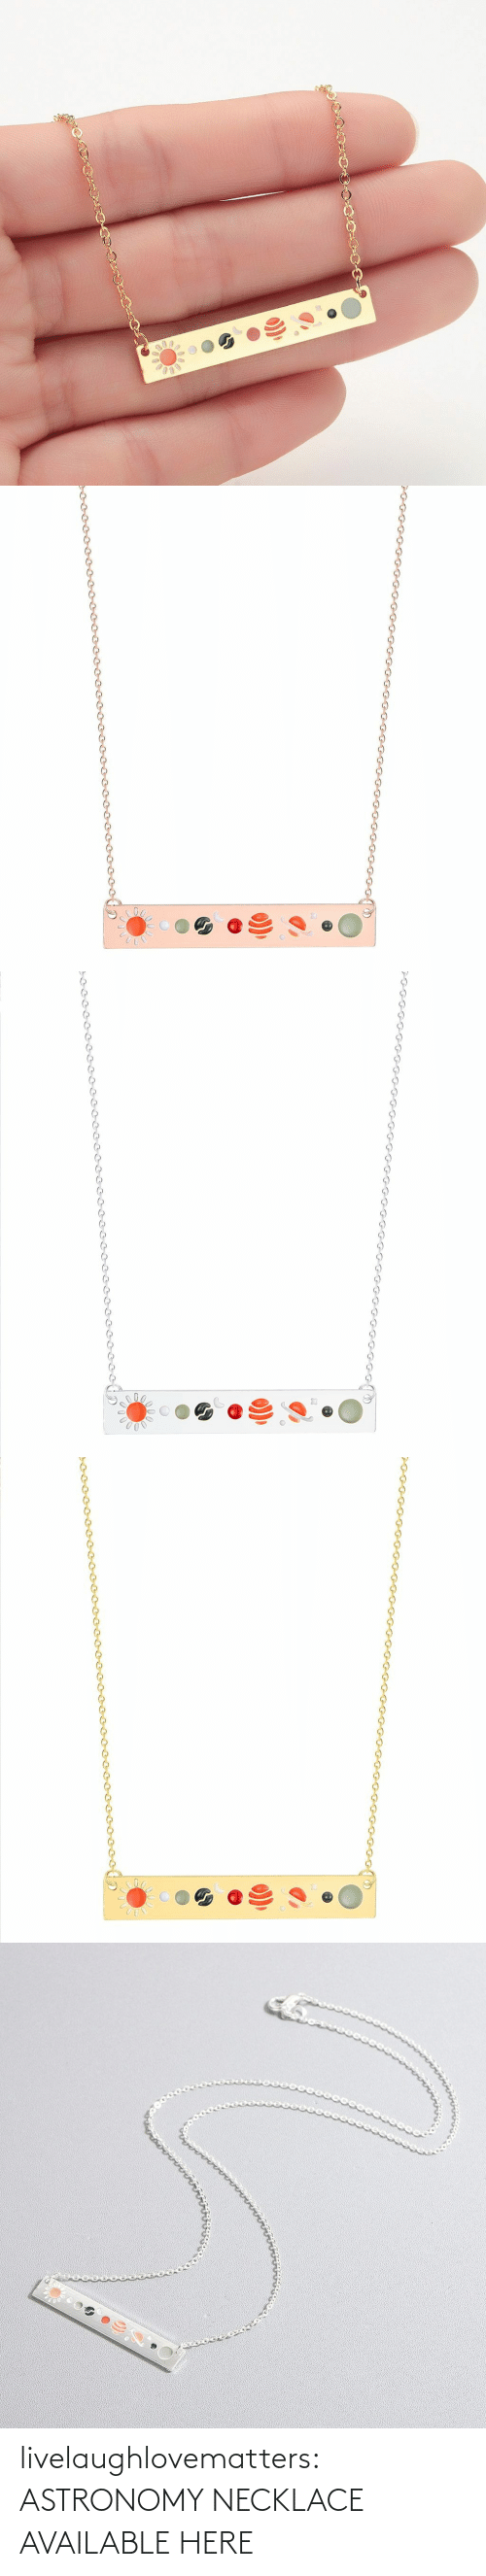 data: livelaughlovematters:  ASTRONOMY NECKLACE AVAILABLE HERE